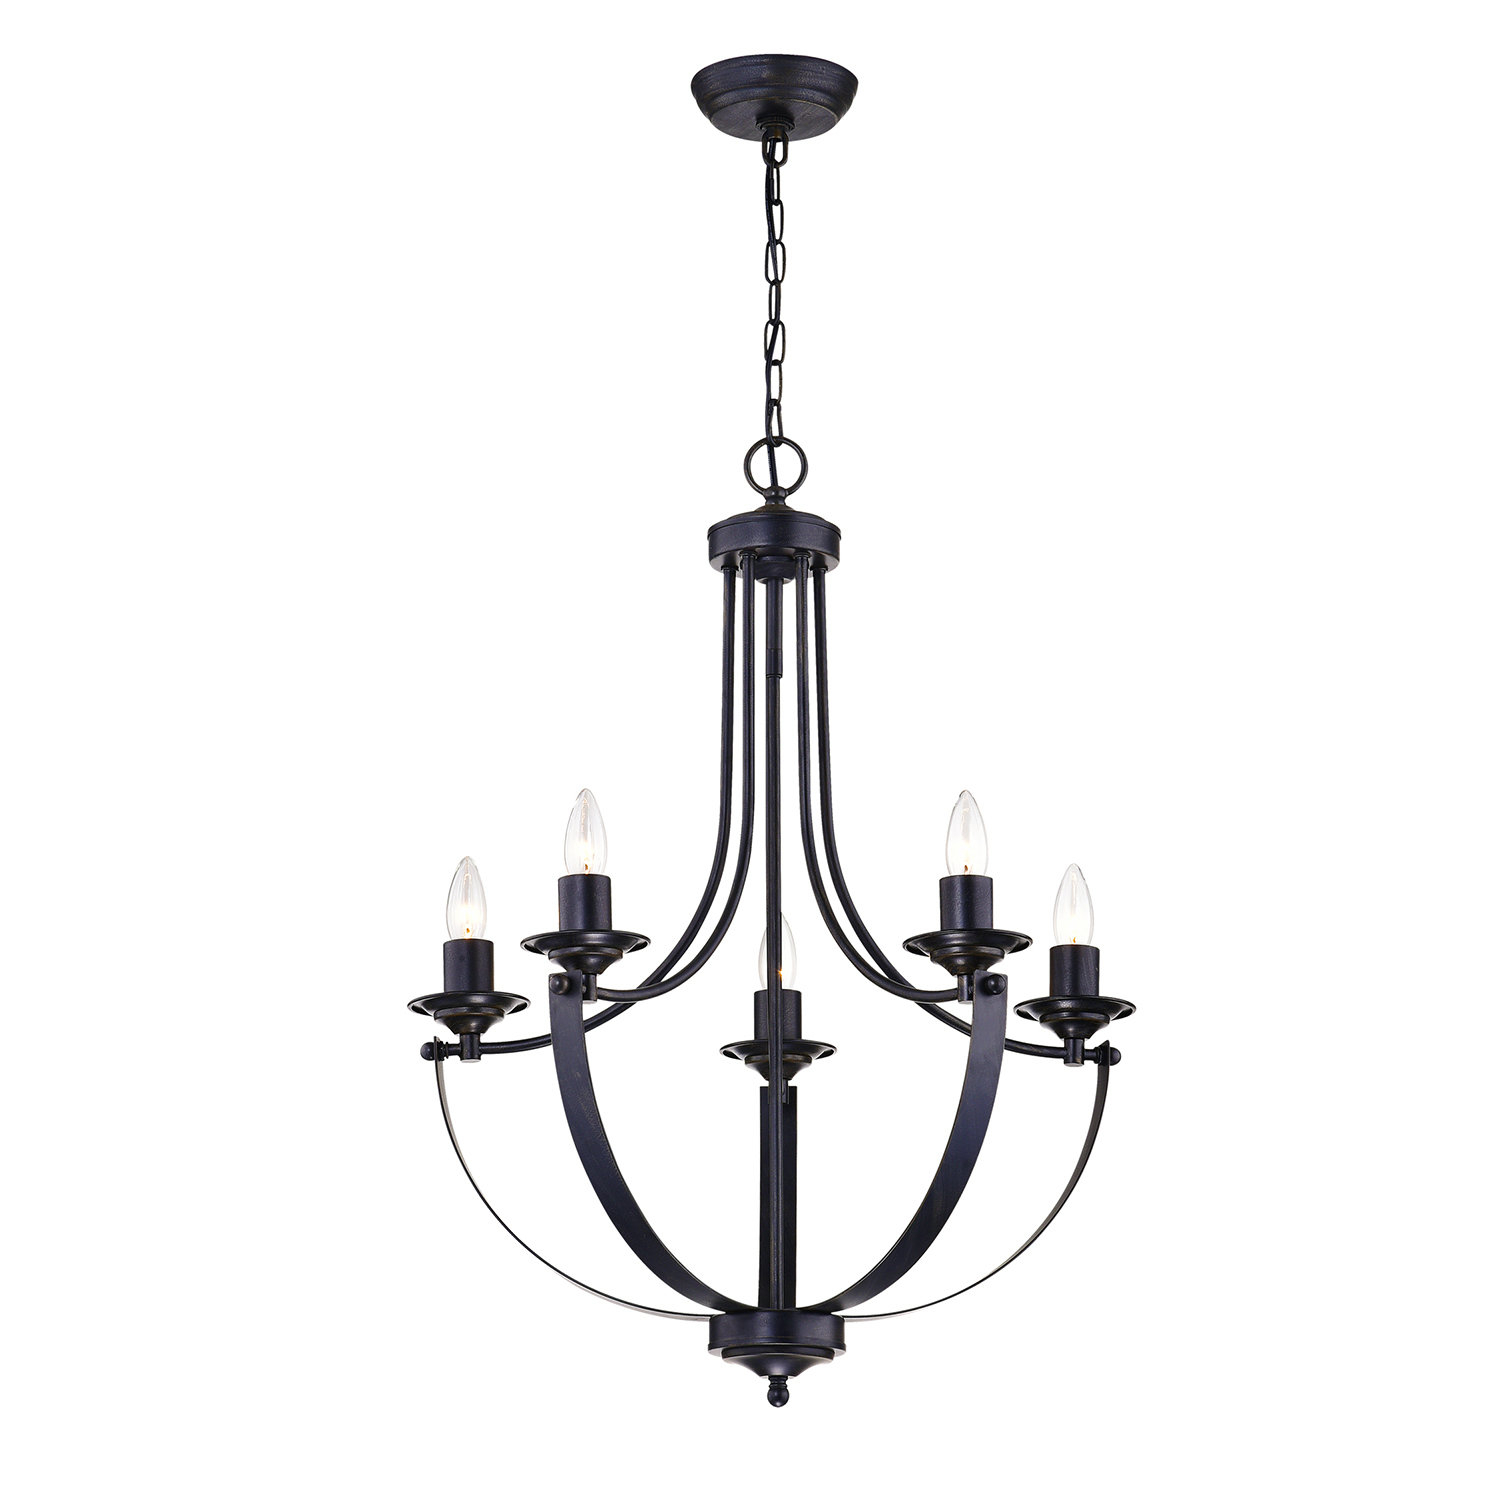 Gracie Oaks Kendal 5-Light Candle Style Chandelier & Reviews with Shaylee 5-Light Candle Style Chandeliers (Image 7 of 30)